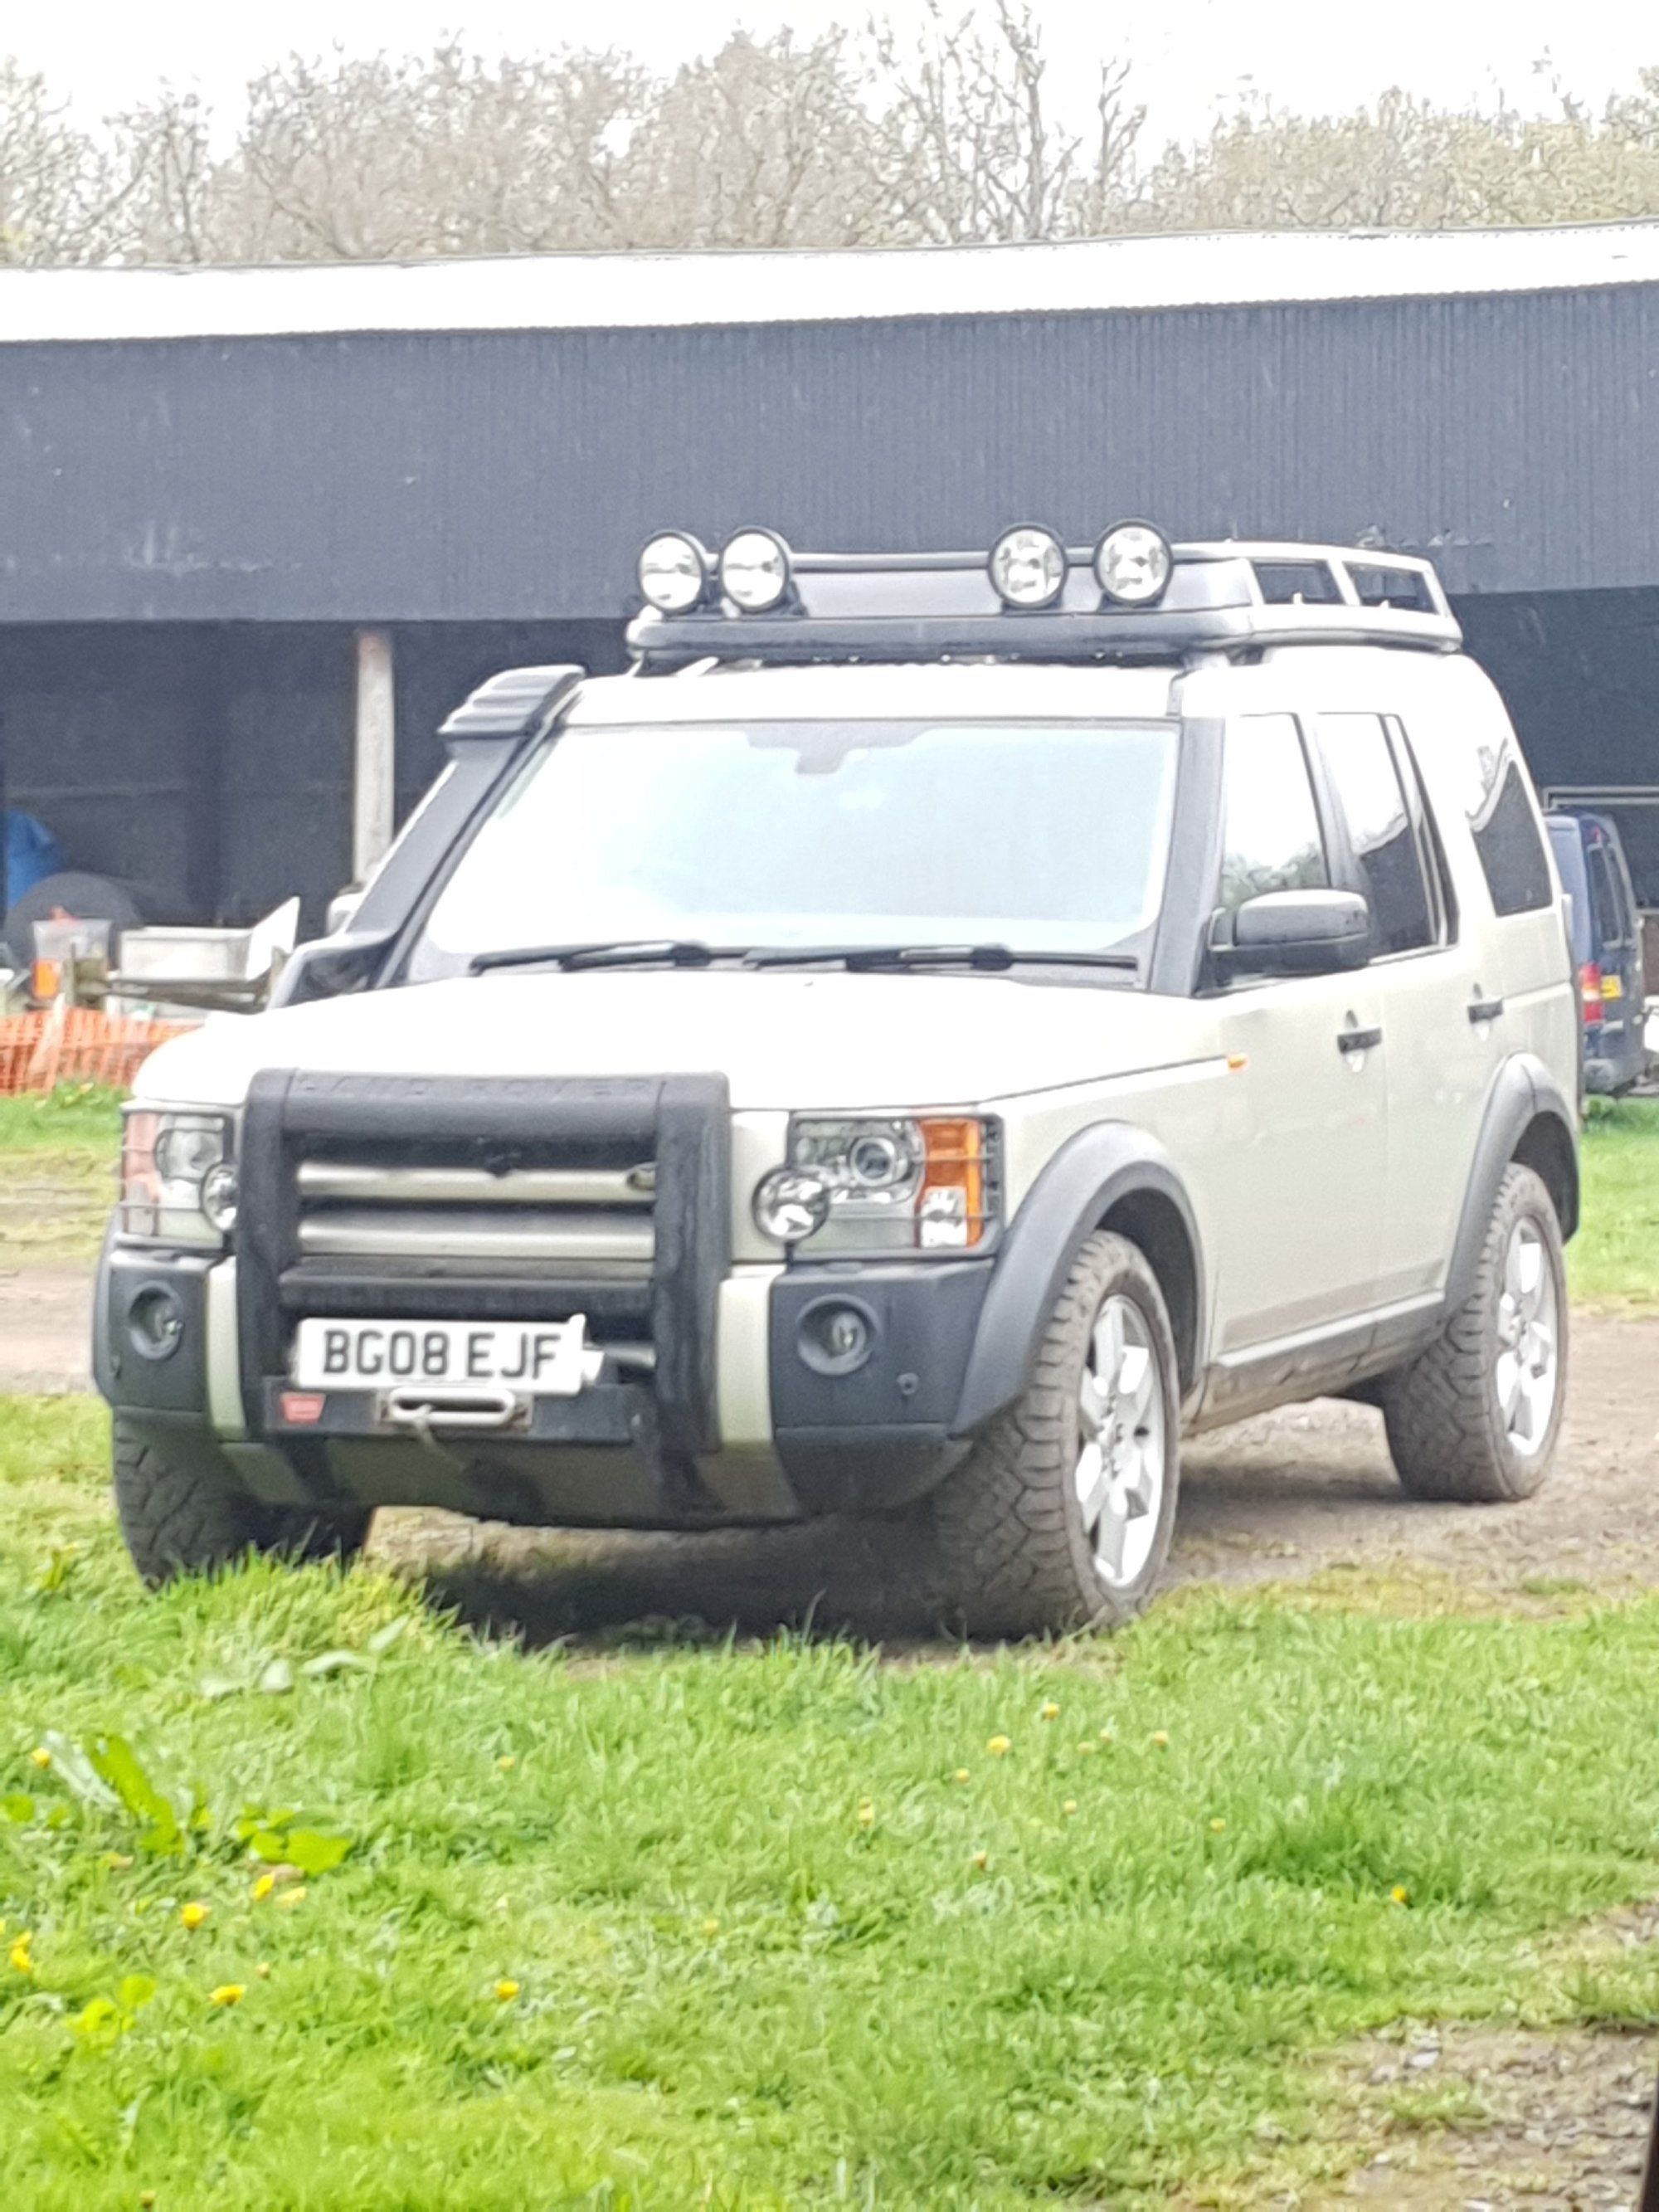 hight resolution of split charge aux battery and fuse box winch and large roof rack